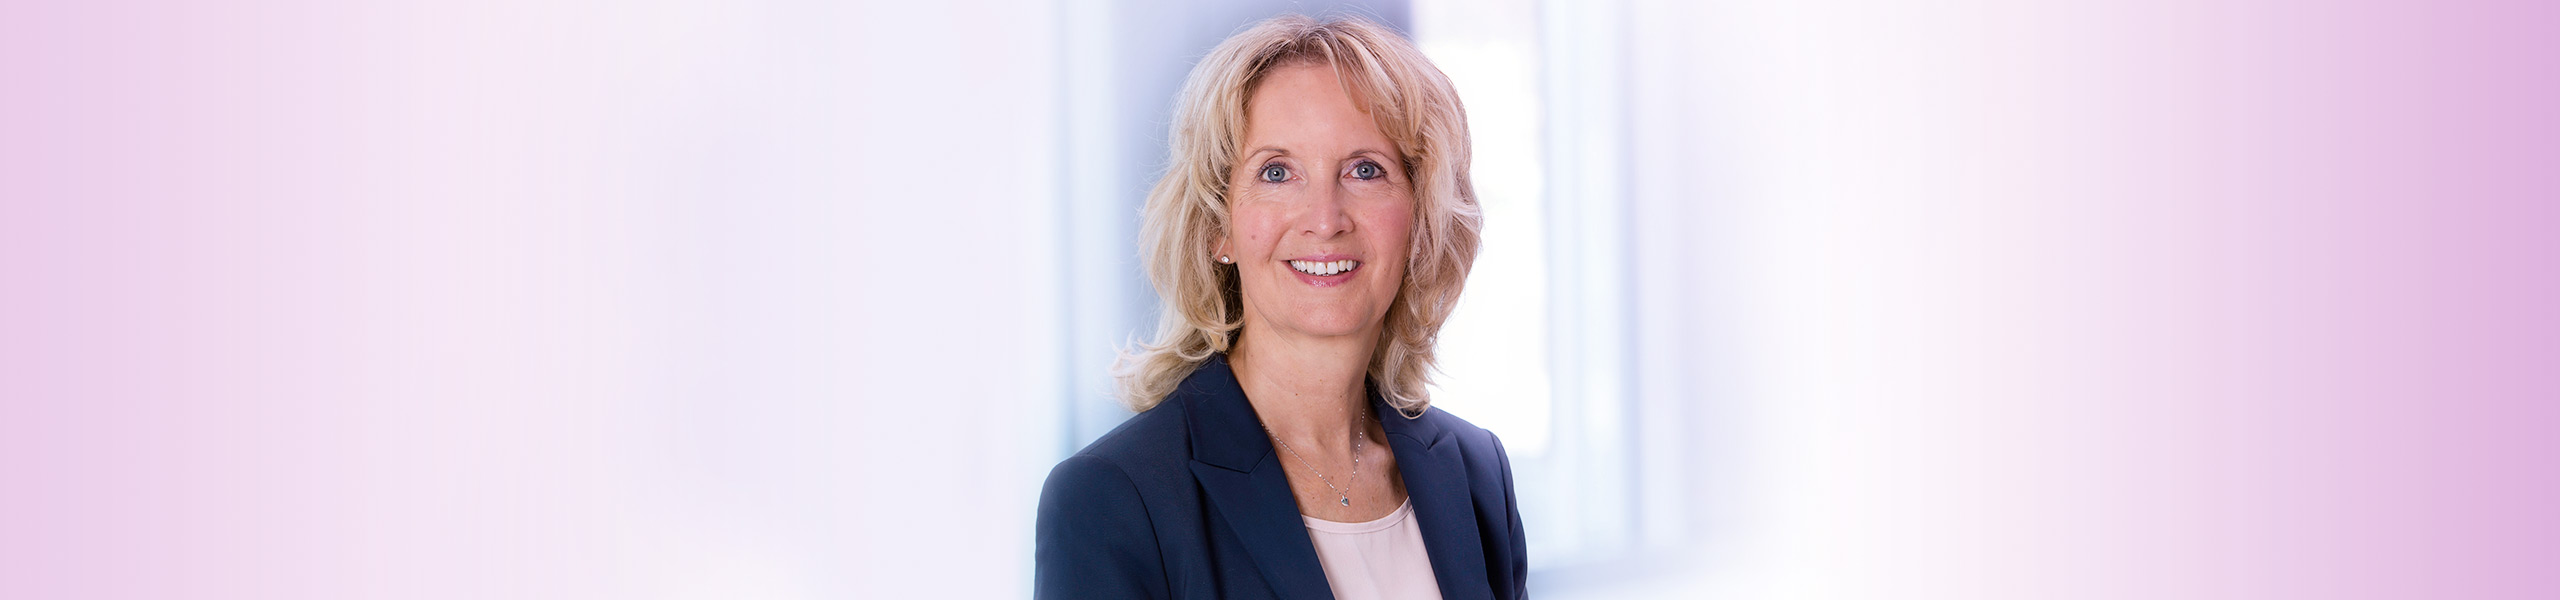 Andrea Ulrich Senior Management Consultant bei BASF Management Consulting